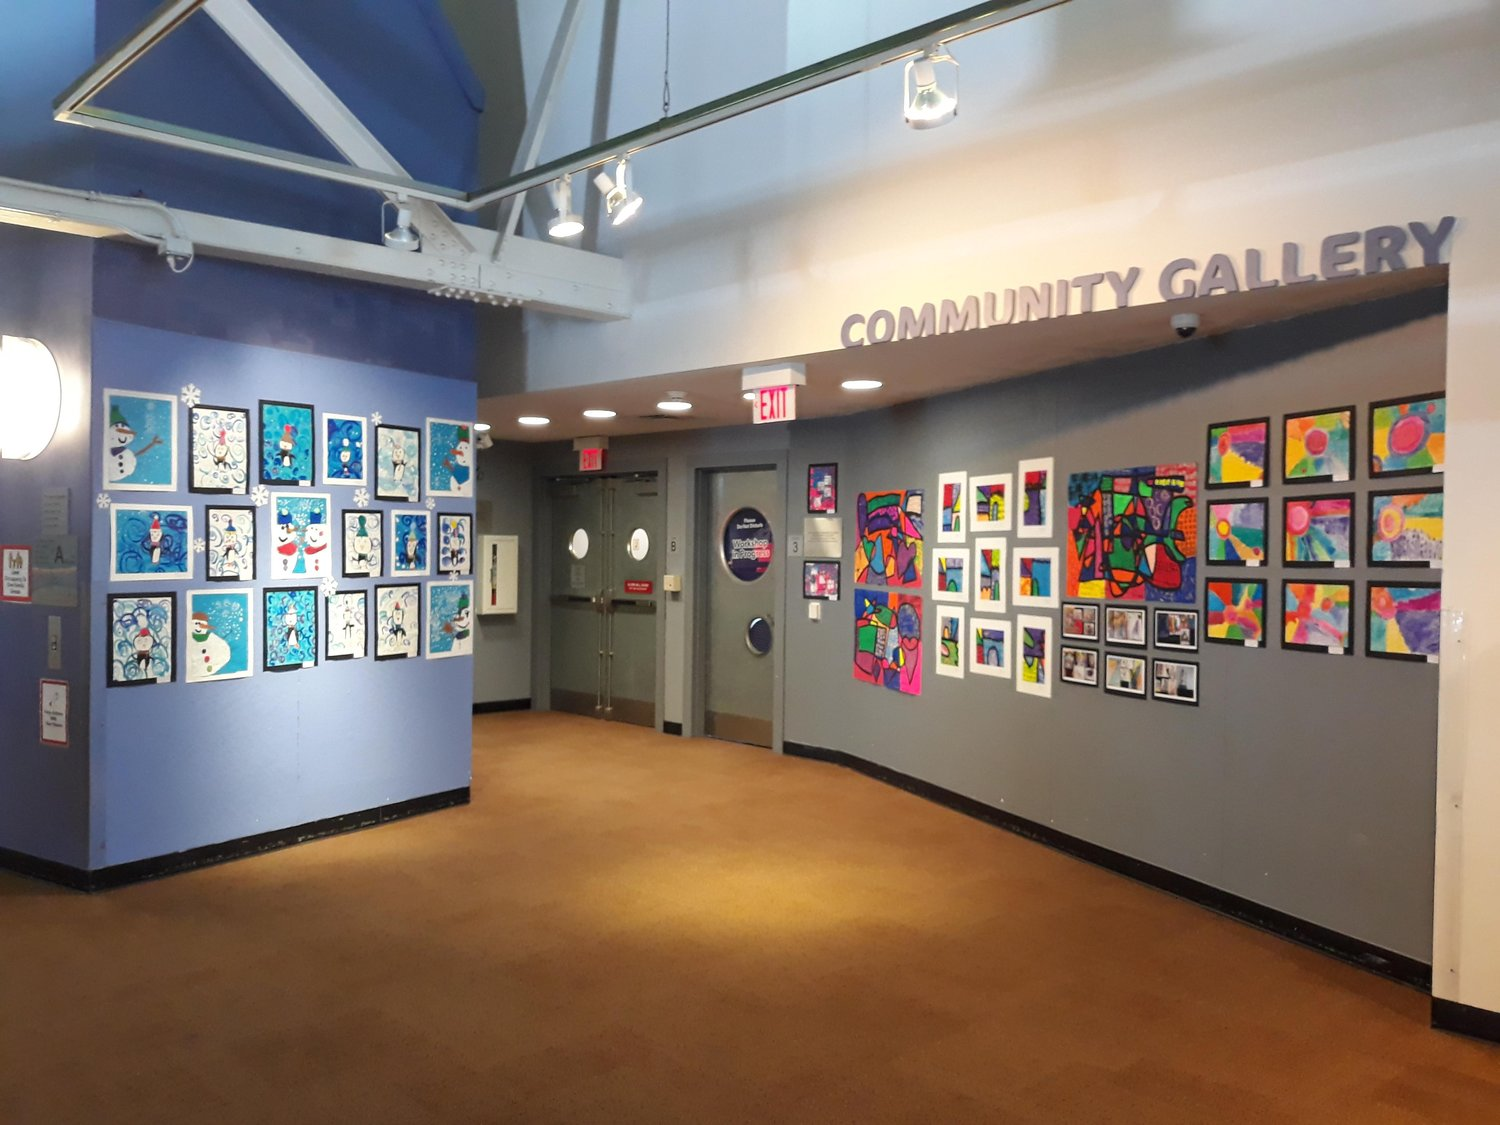 The Community Gallery at the Long Island Children's Museum is exhibiting the artwork of students from the Lawrence Primary School.